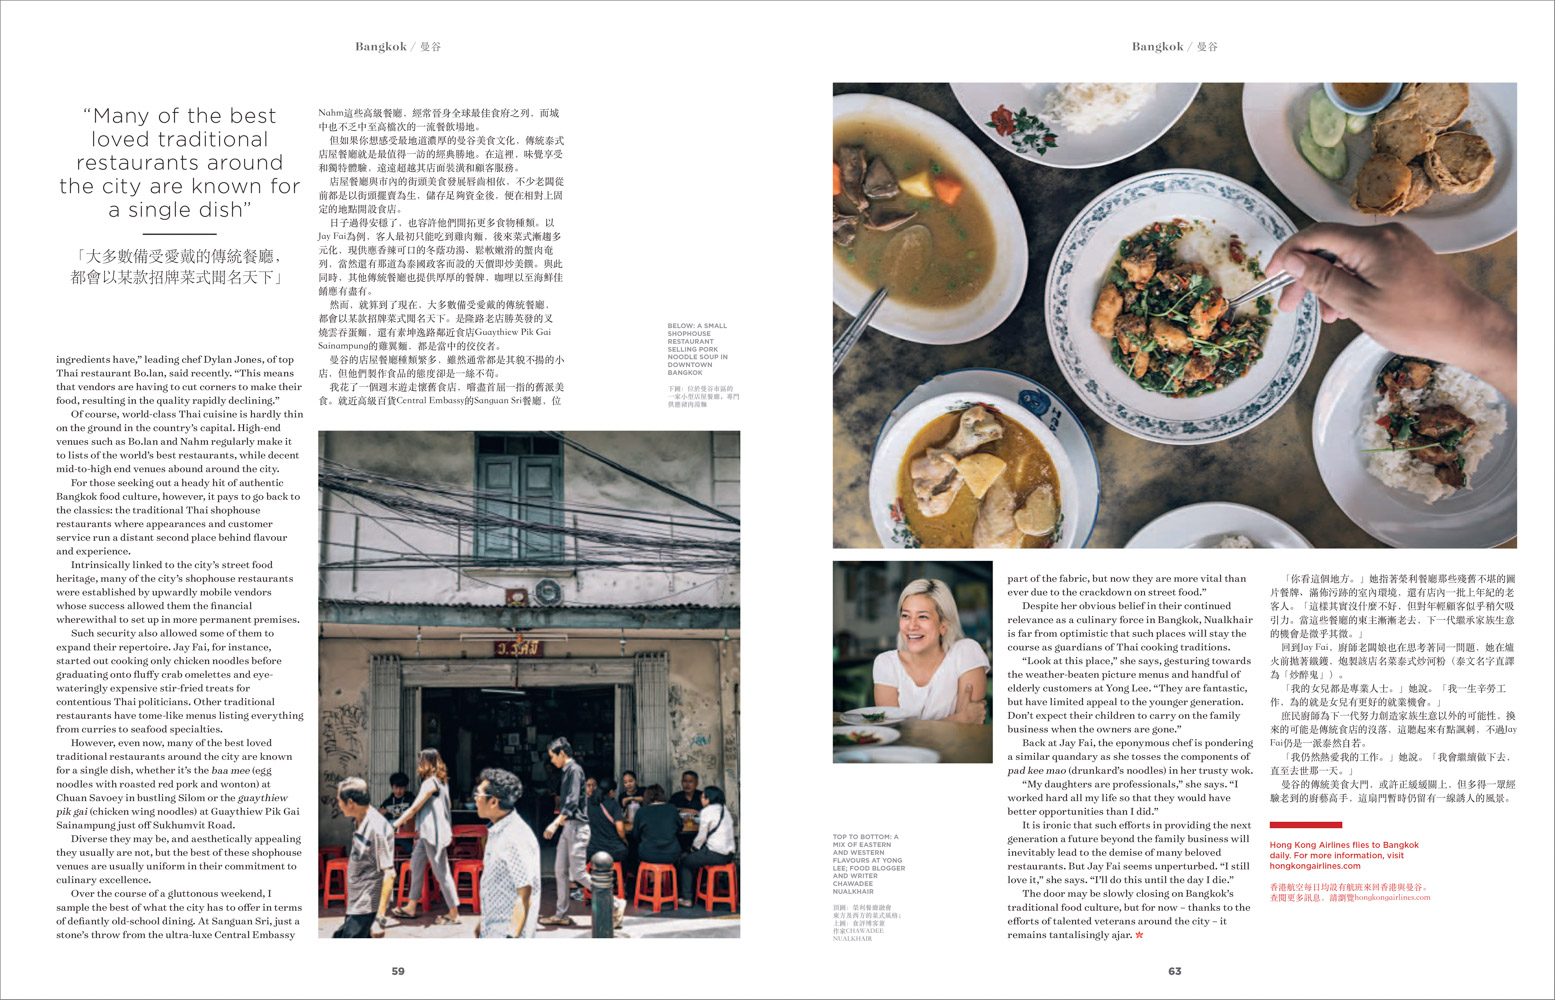 Shophouse restaurants in Bangkok for Hong Kong Airlines' inflight magazine.